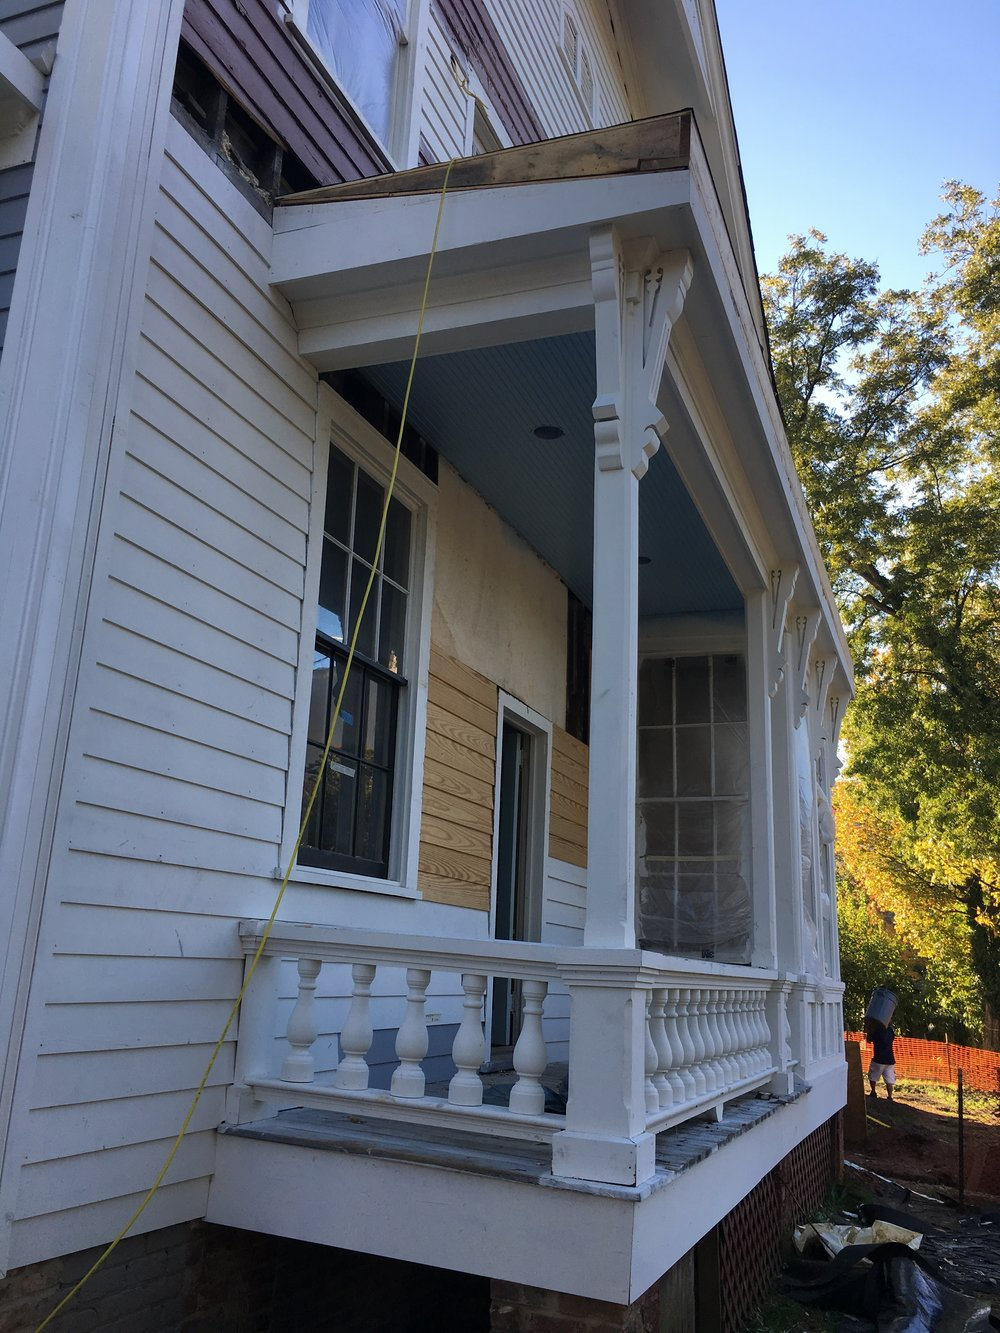 Our haint blue ceilings are in place on the north porch and the front porch!